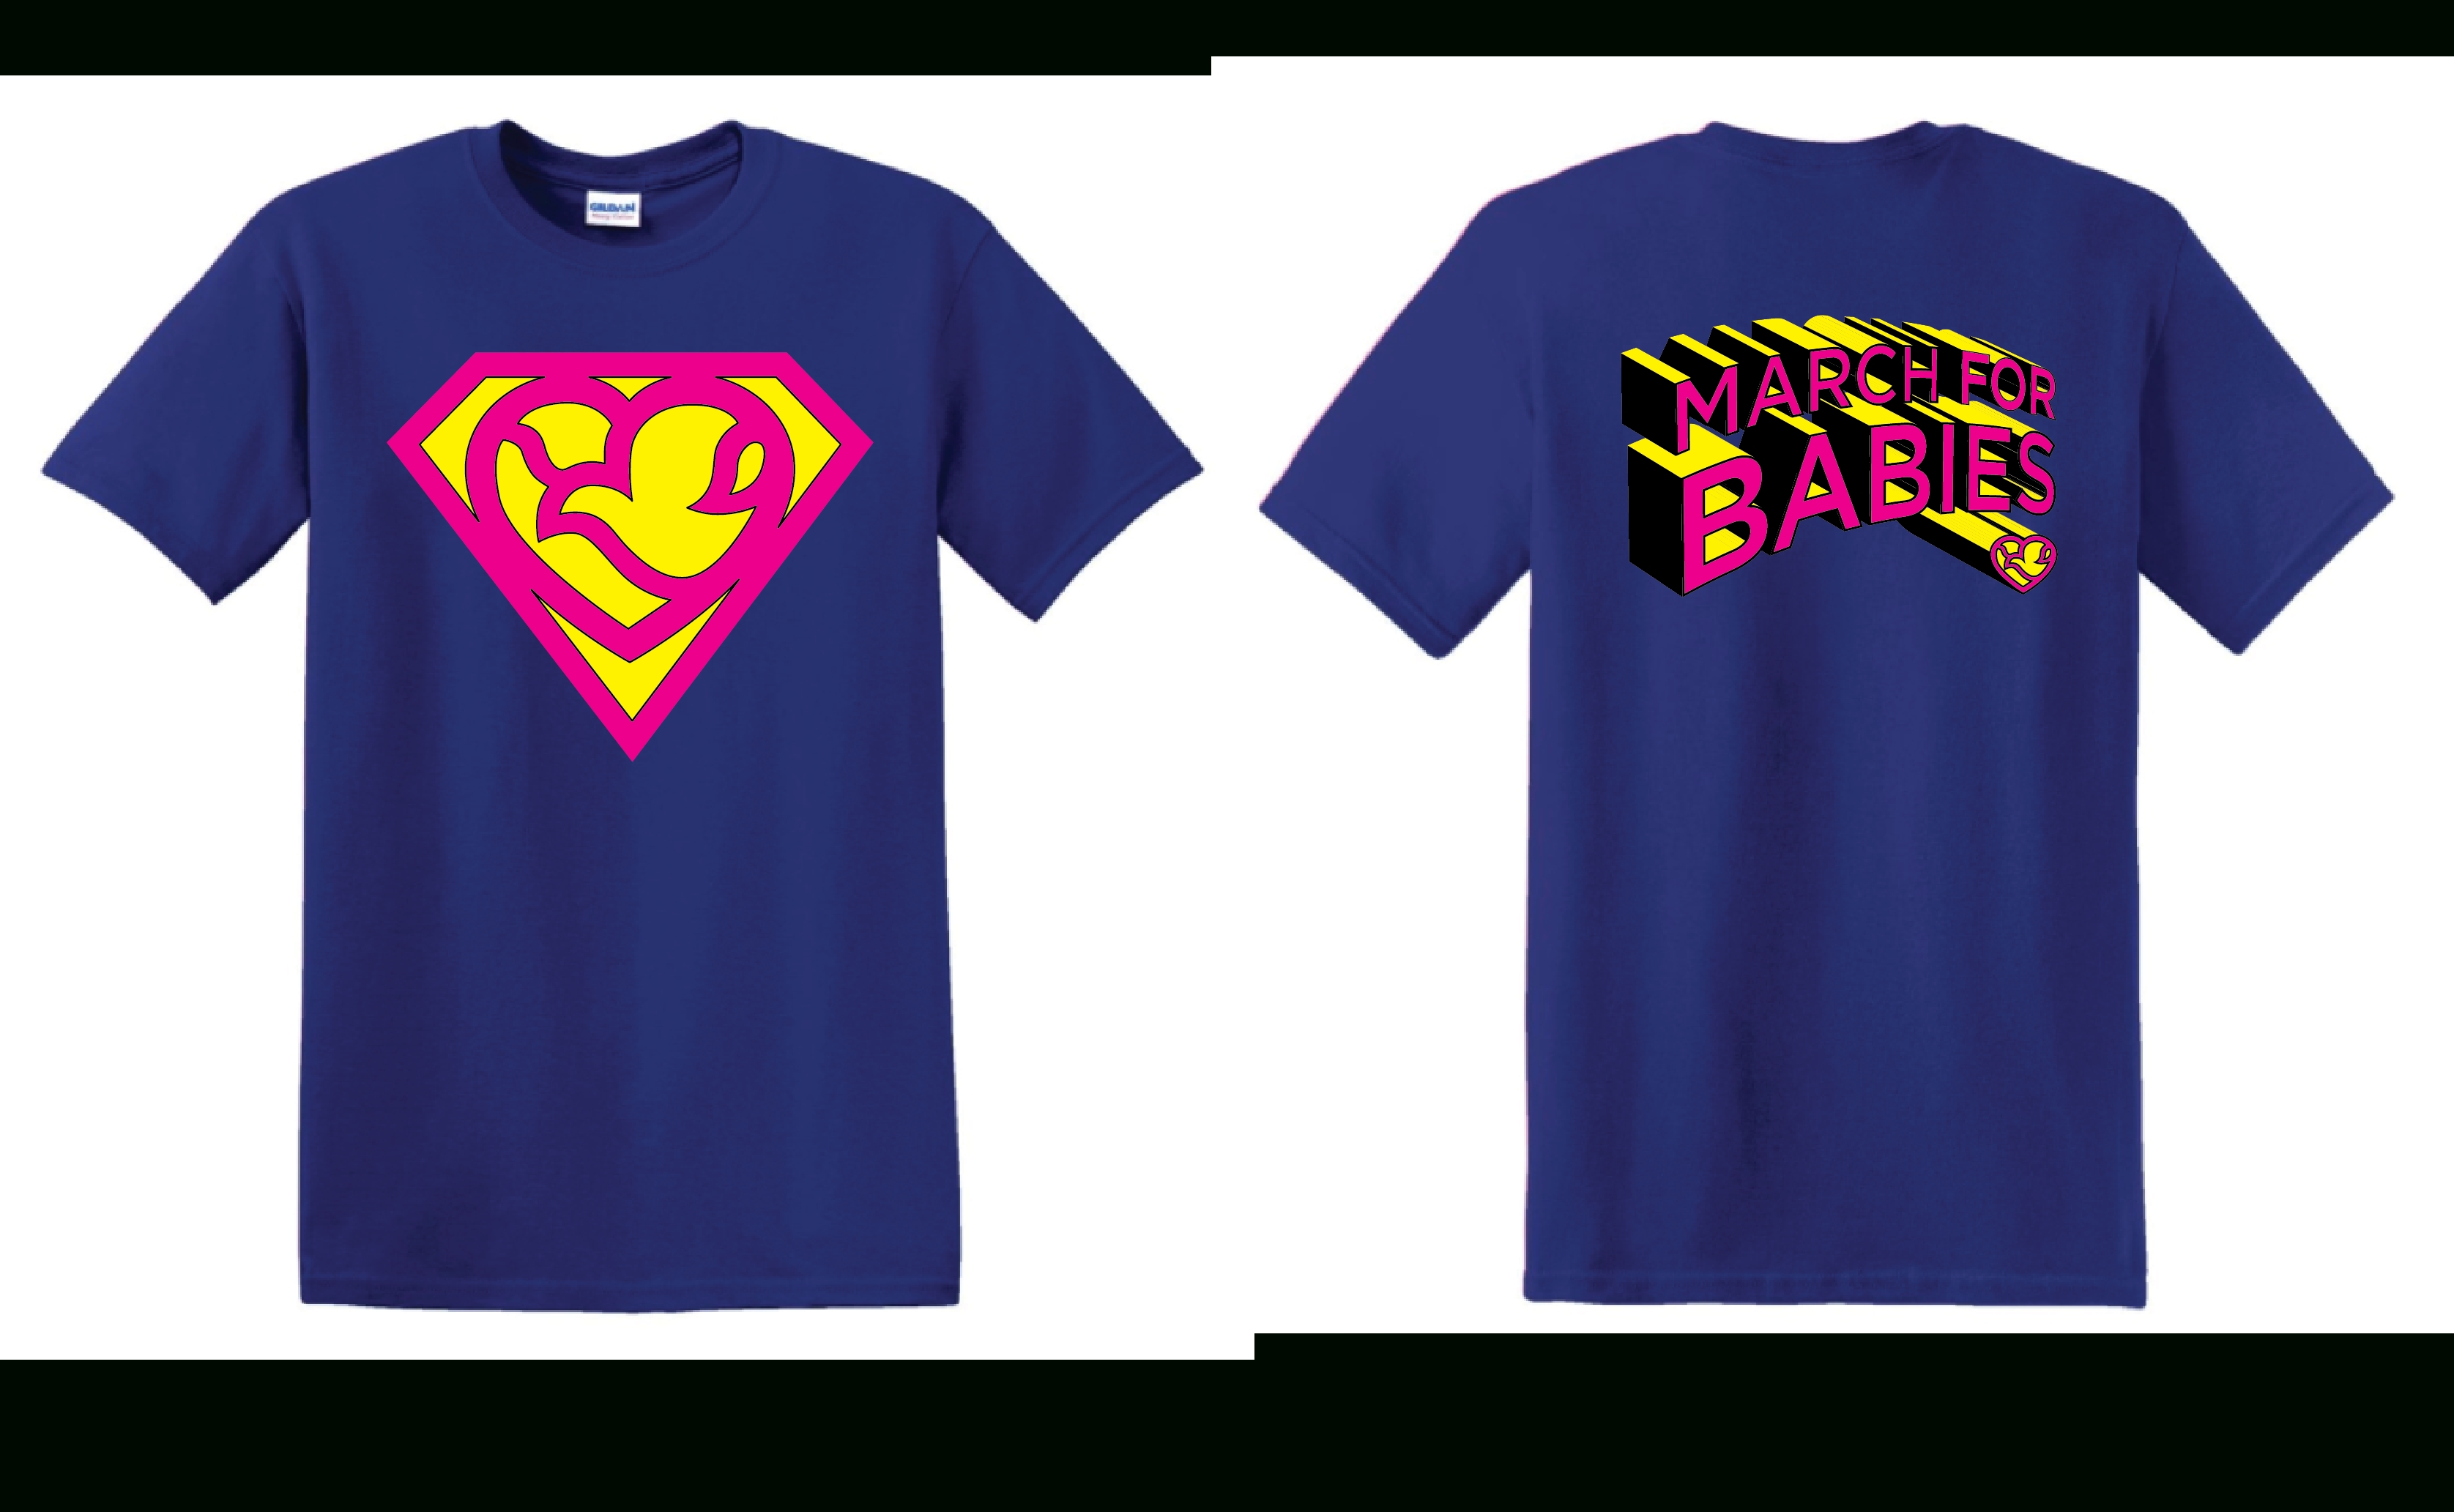 10 Amazing March Of Dimes T Shirt Ideas register now to walk in march for babies april 29 methodist 2021